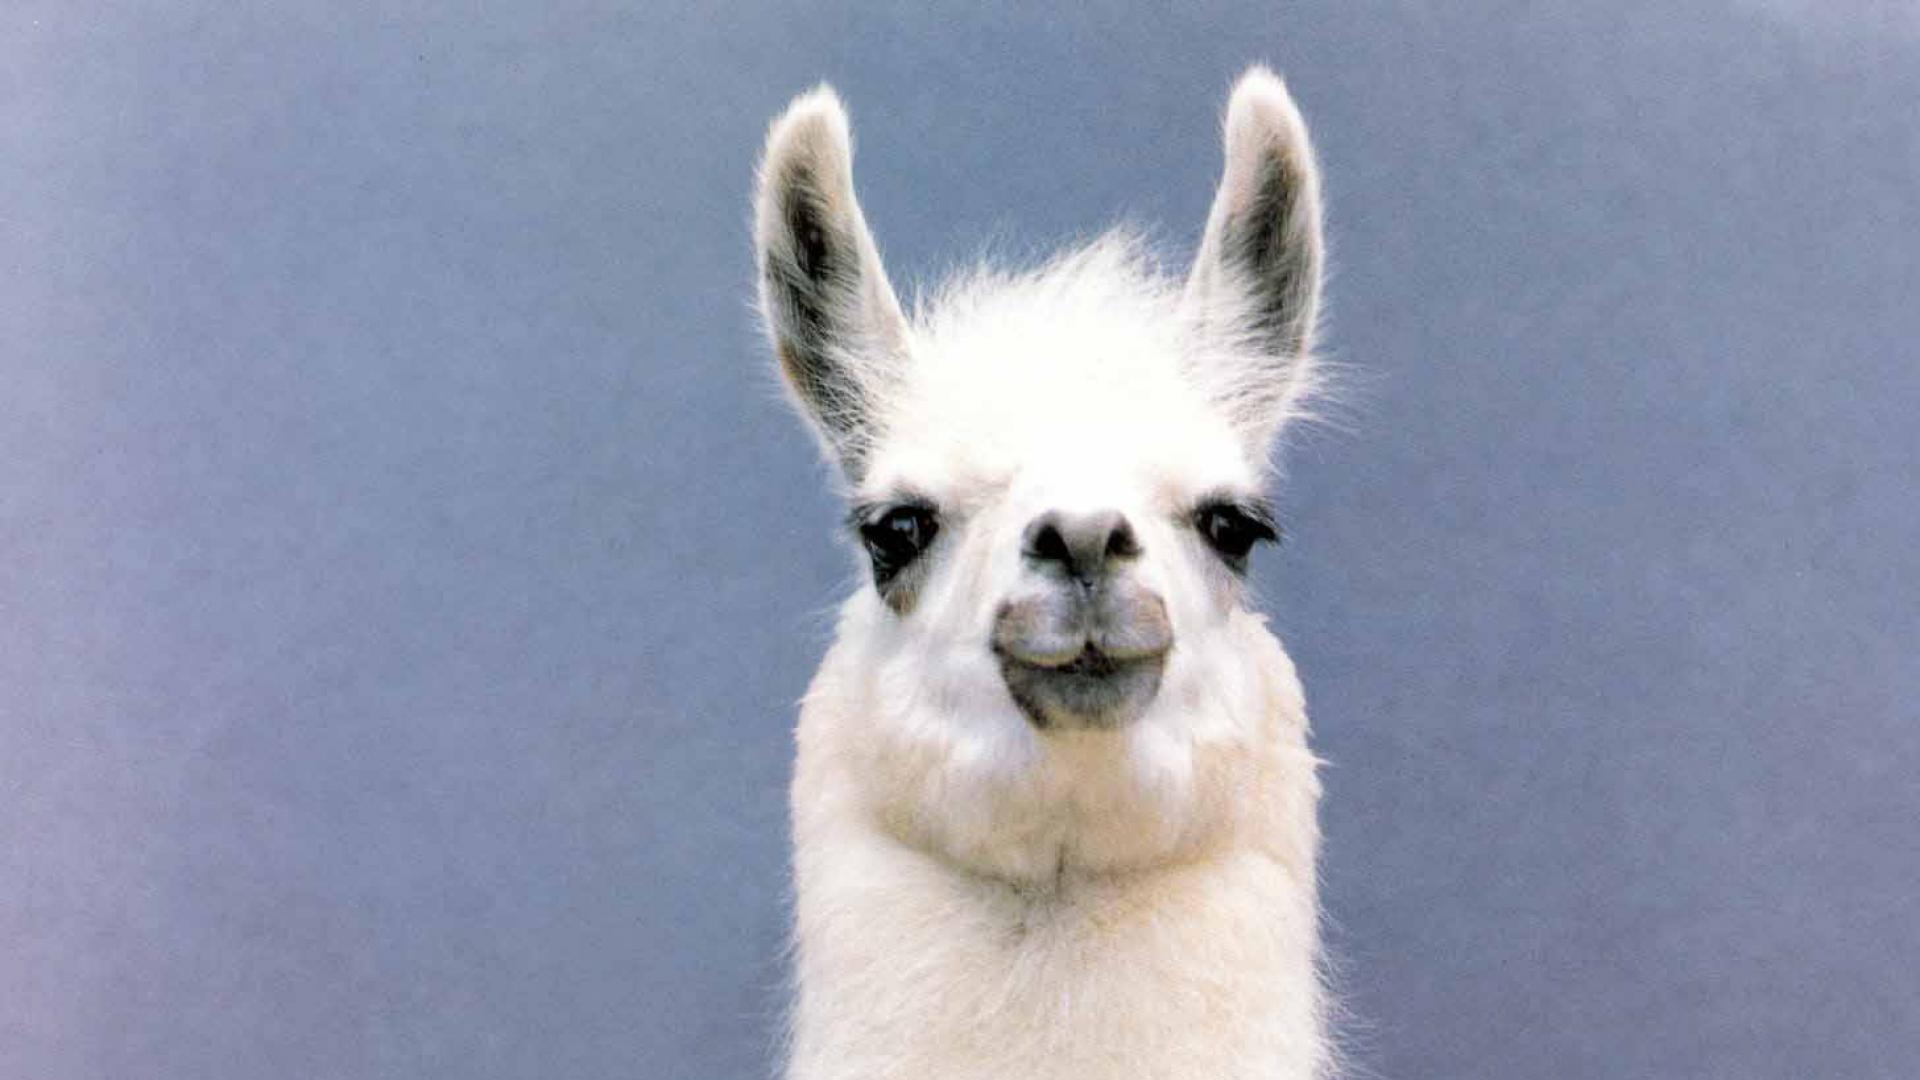 50 High Quality Llama Wallpapers Full HD Pictures 1920x1080